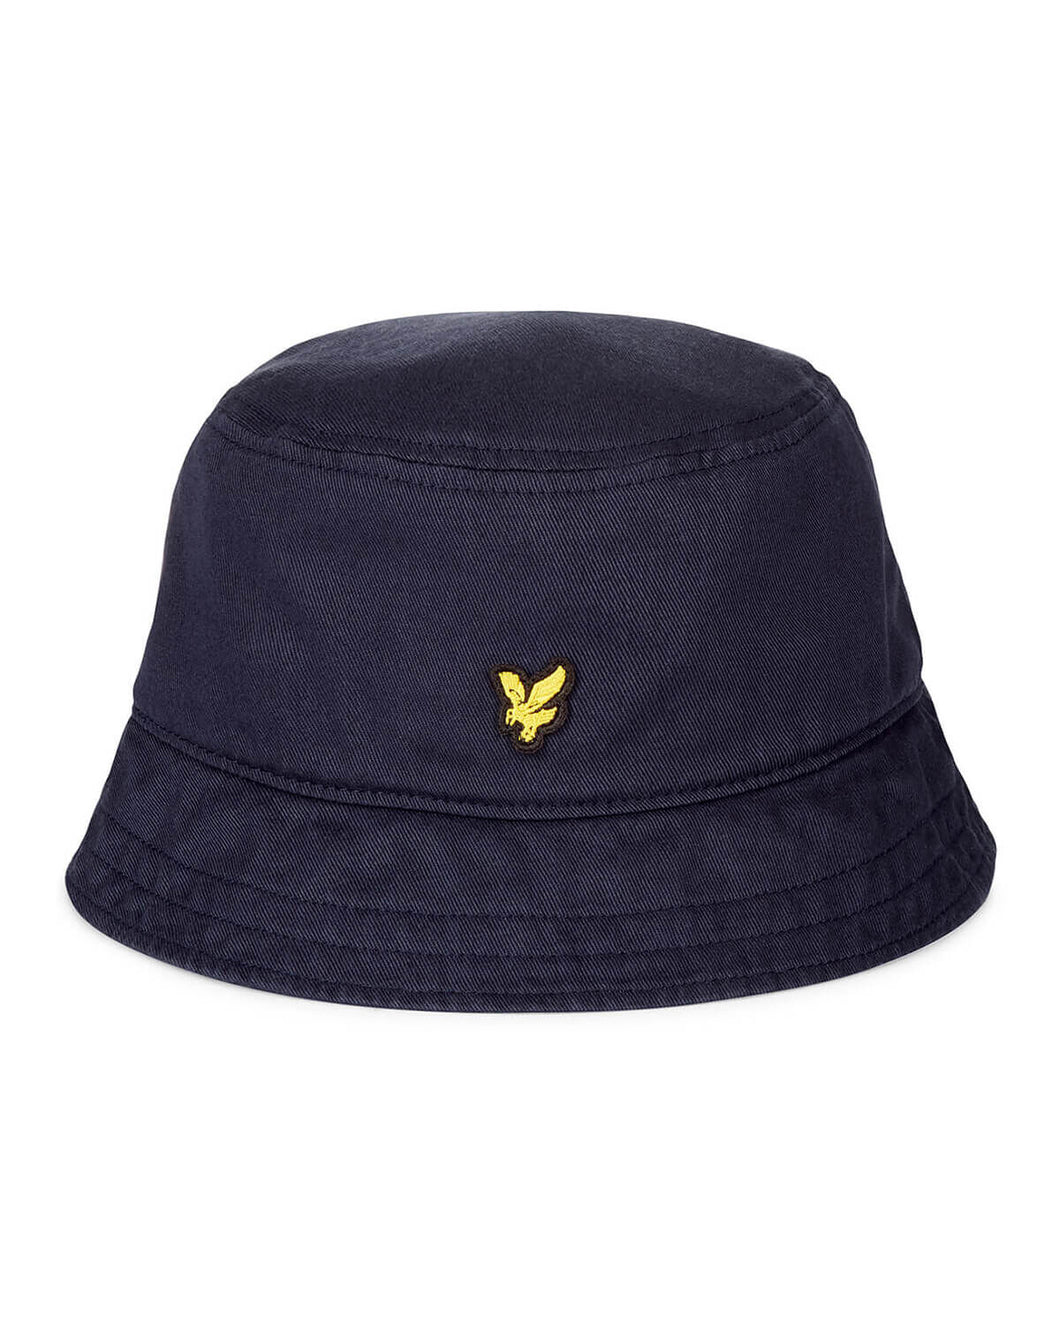 Lyle & Scott Dark Navy Cotton Twill Bucket Hat -HE800A - Z271